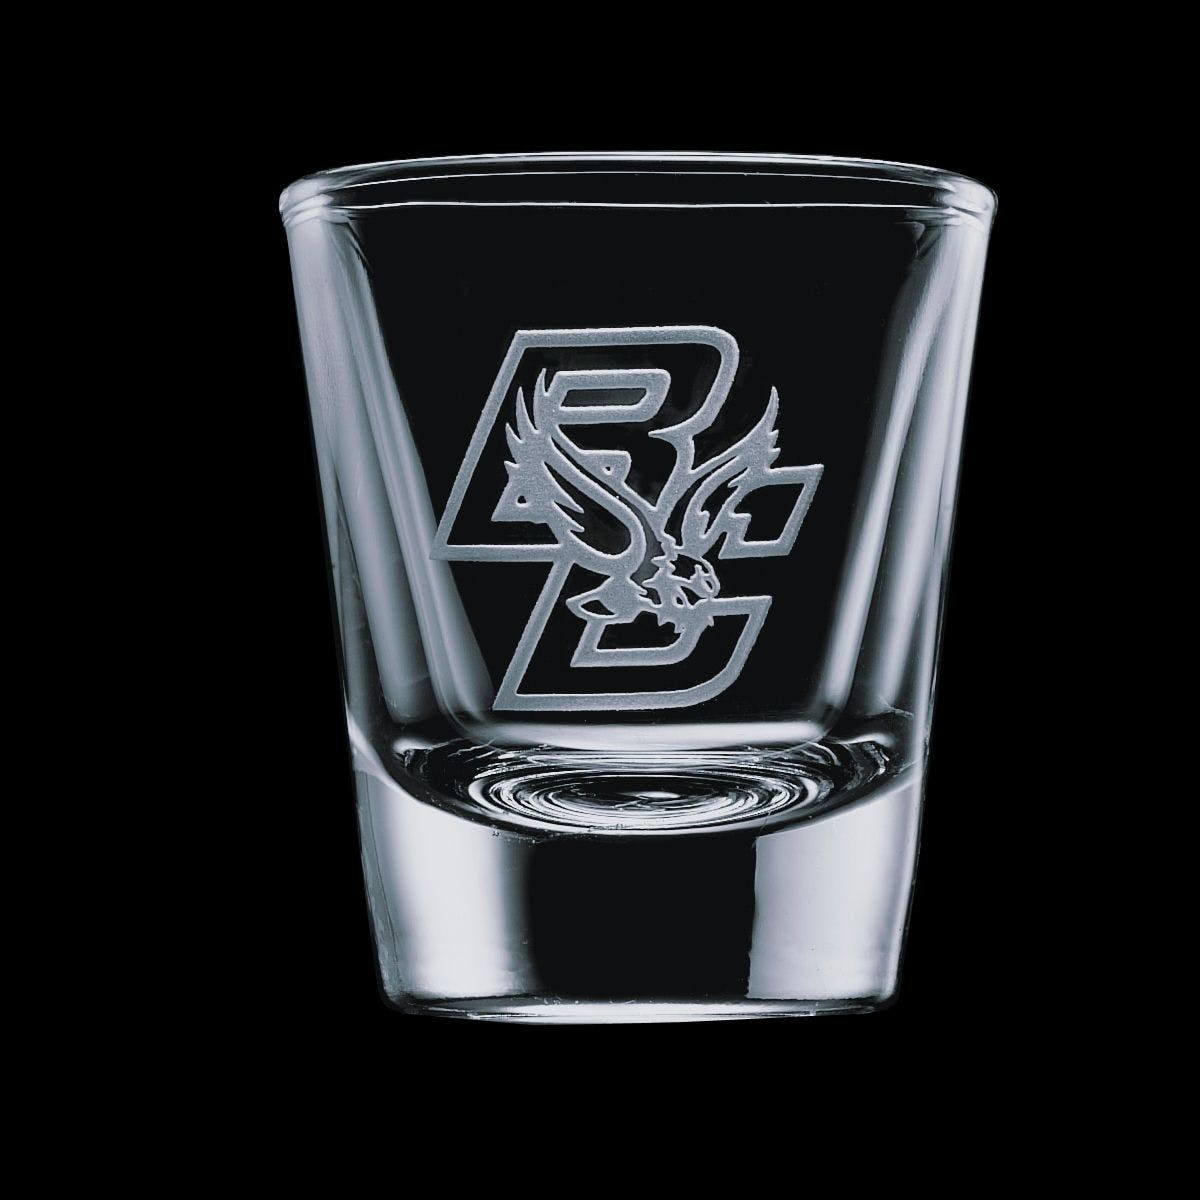 Shot Glasses Shot glass sold by Ink Splash Promos, LLC